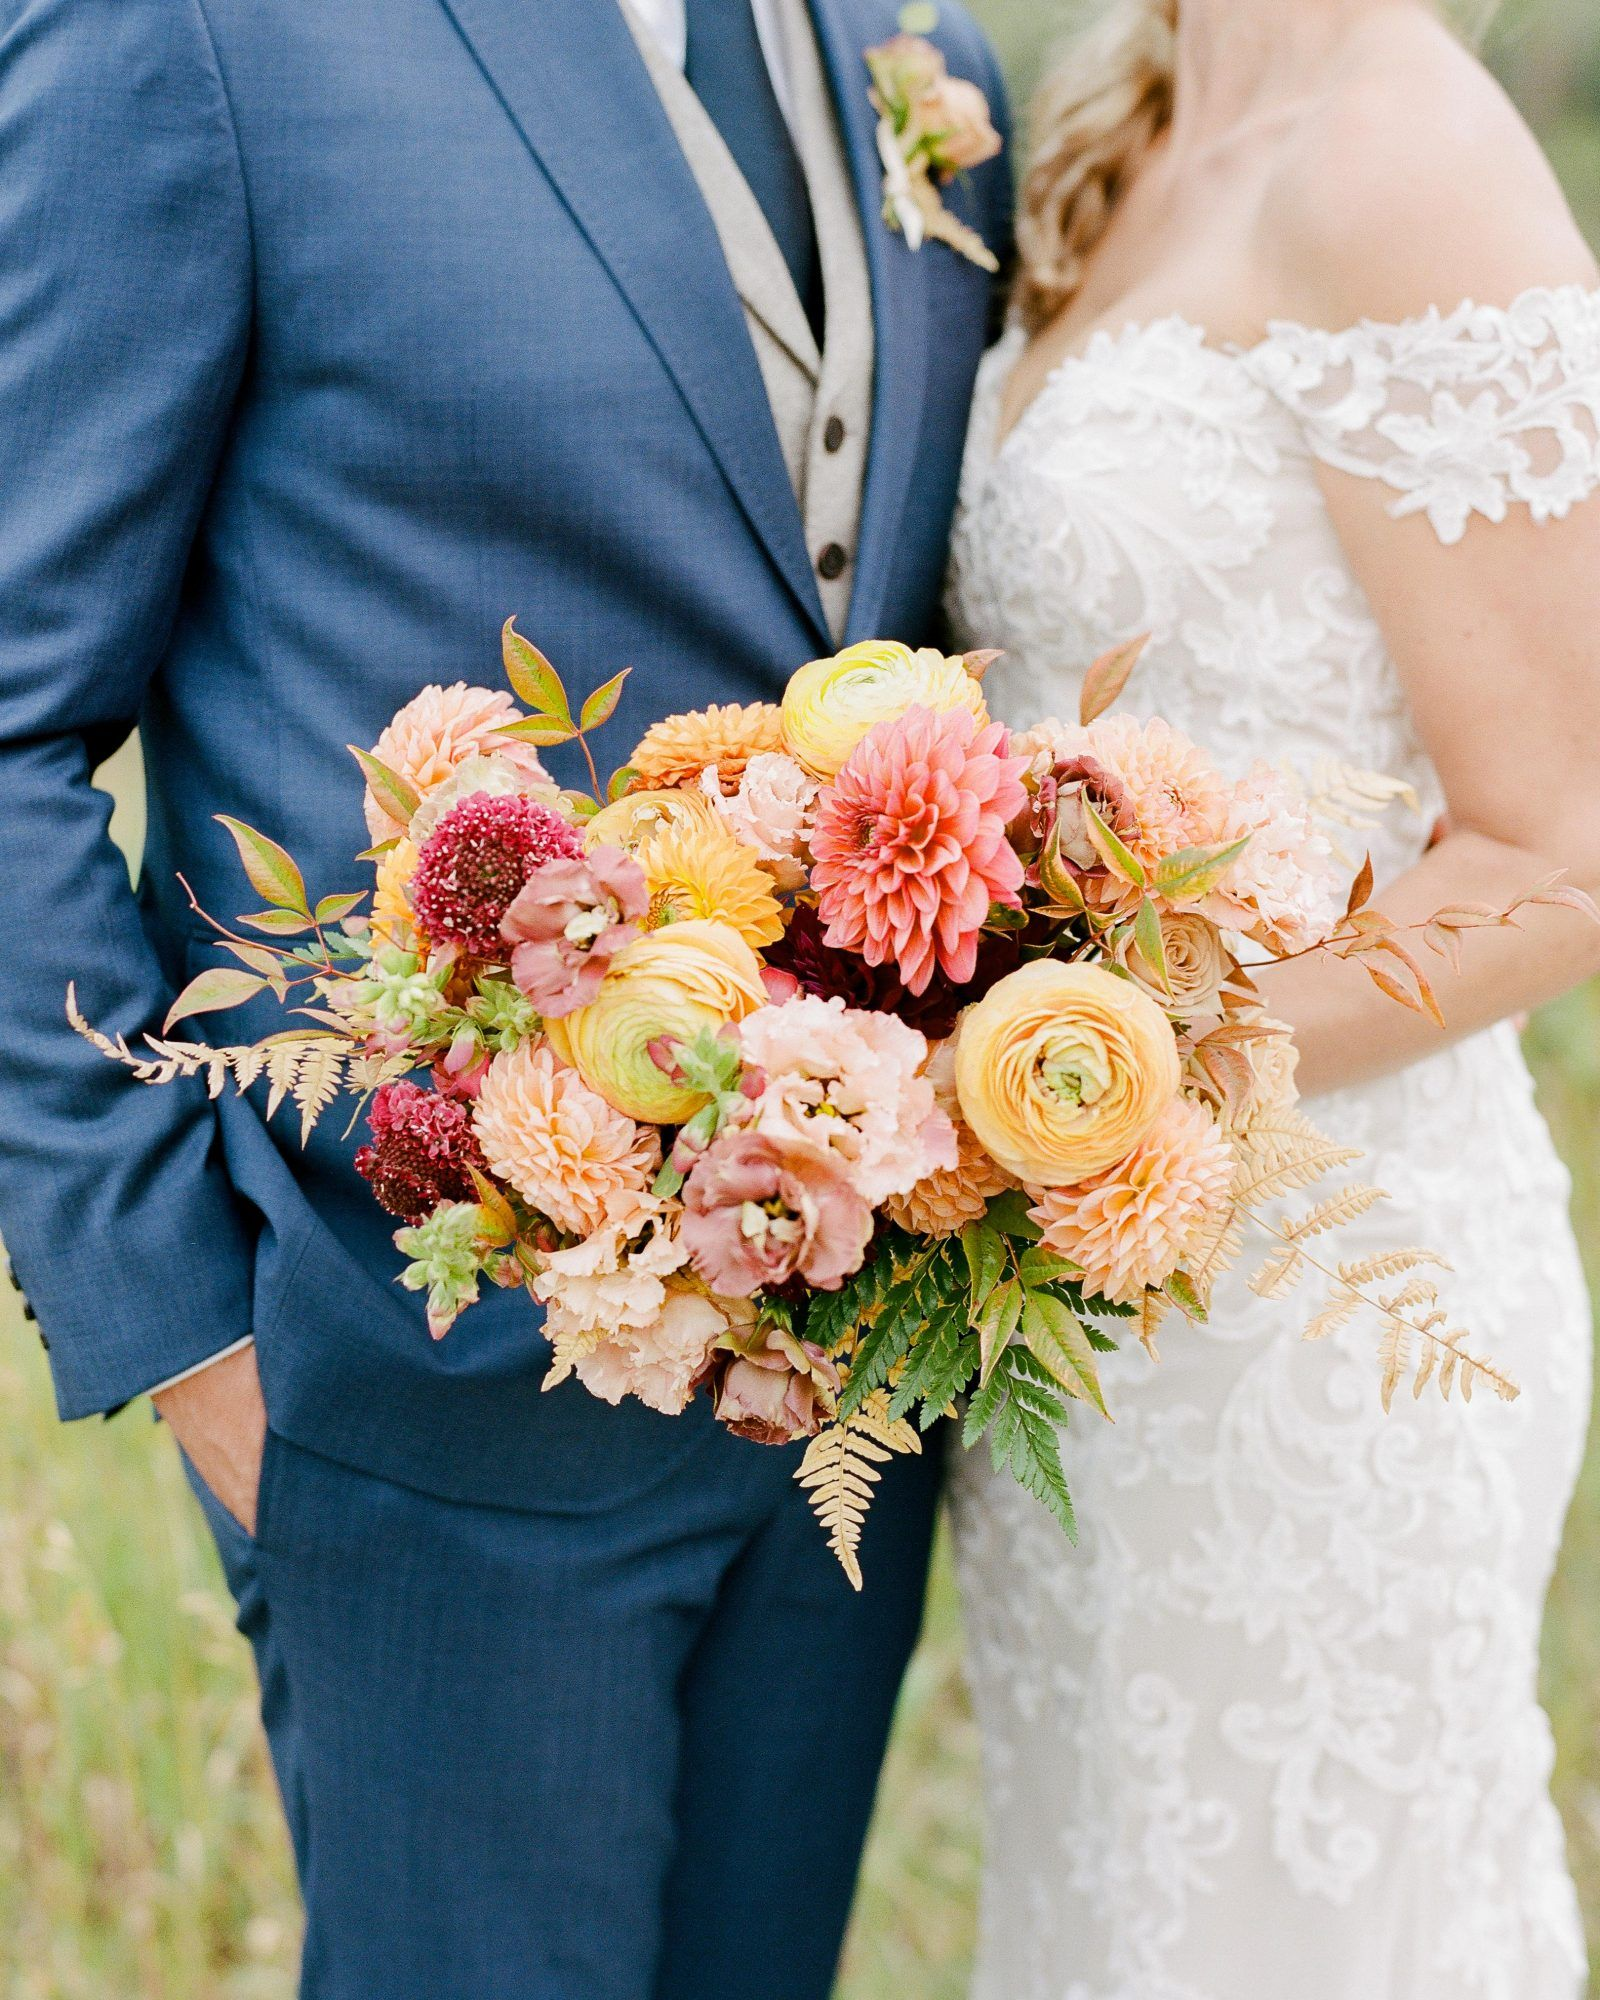 13 Lush Spring Wedding Decorations To Bring To Life Your: * Source Local Food And Flowers * Choose Recycled Paper